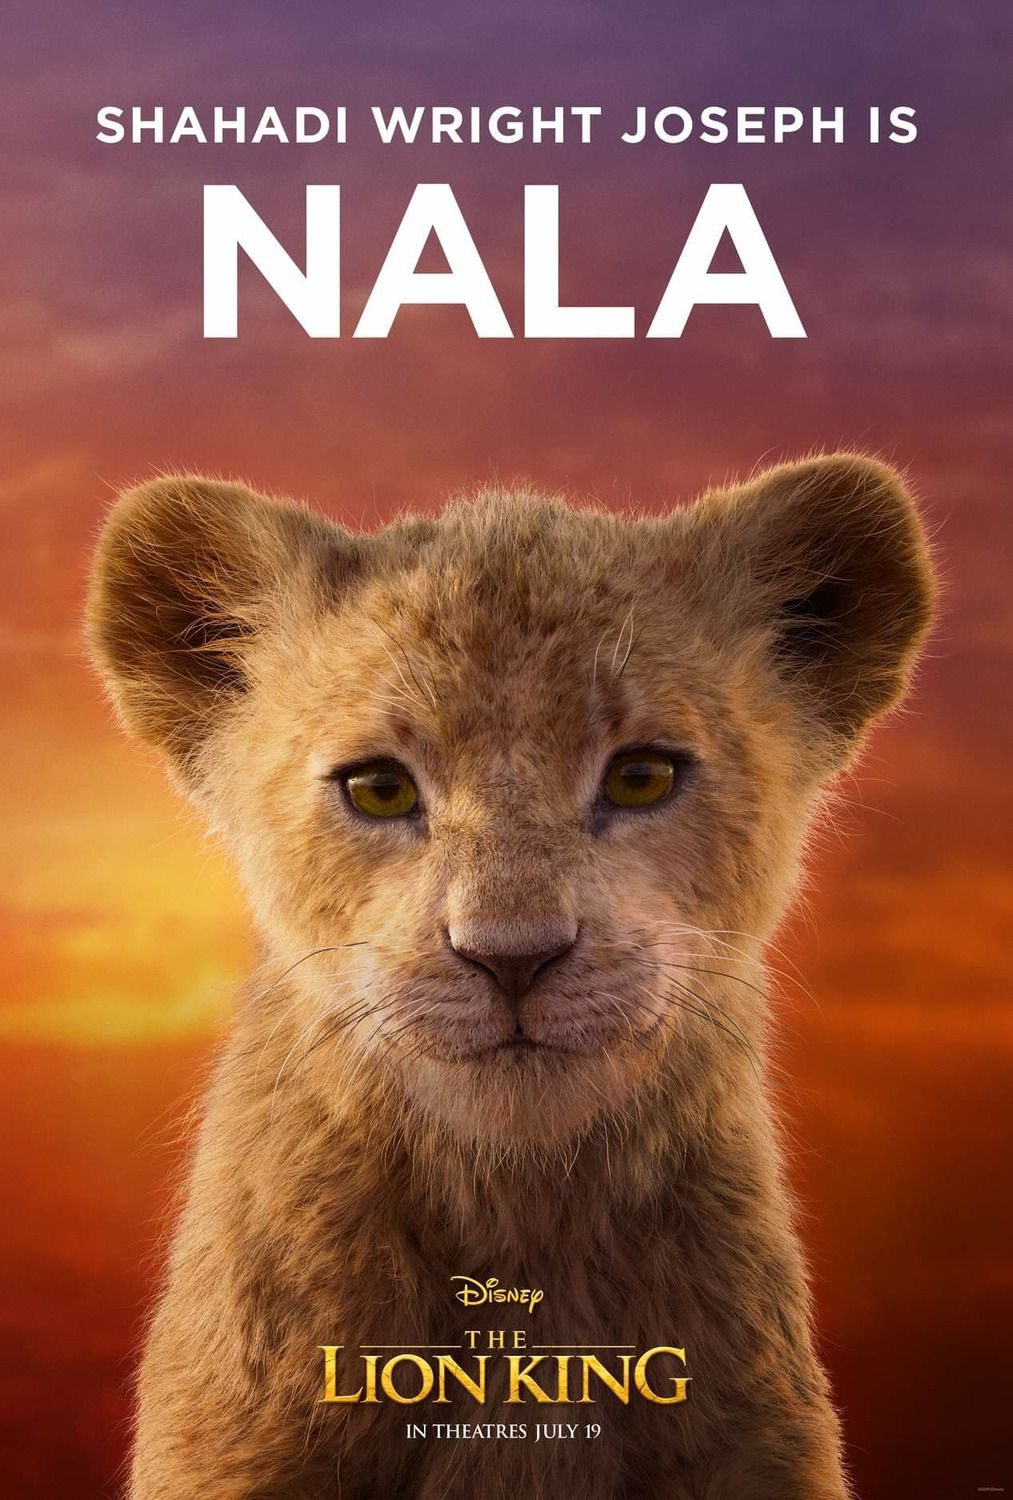 Shahadi Wright Joseph is young Nala